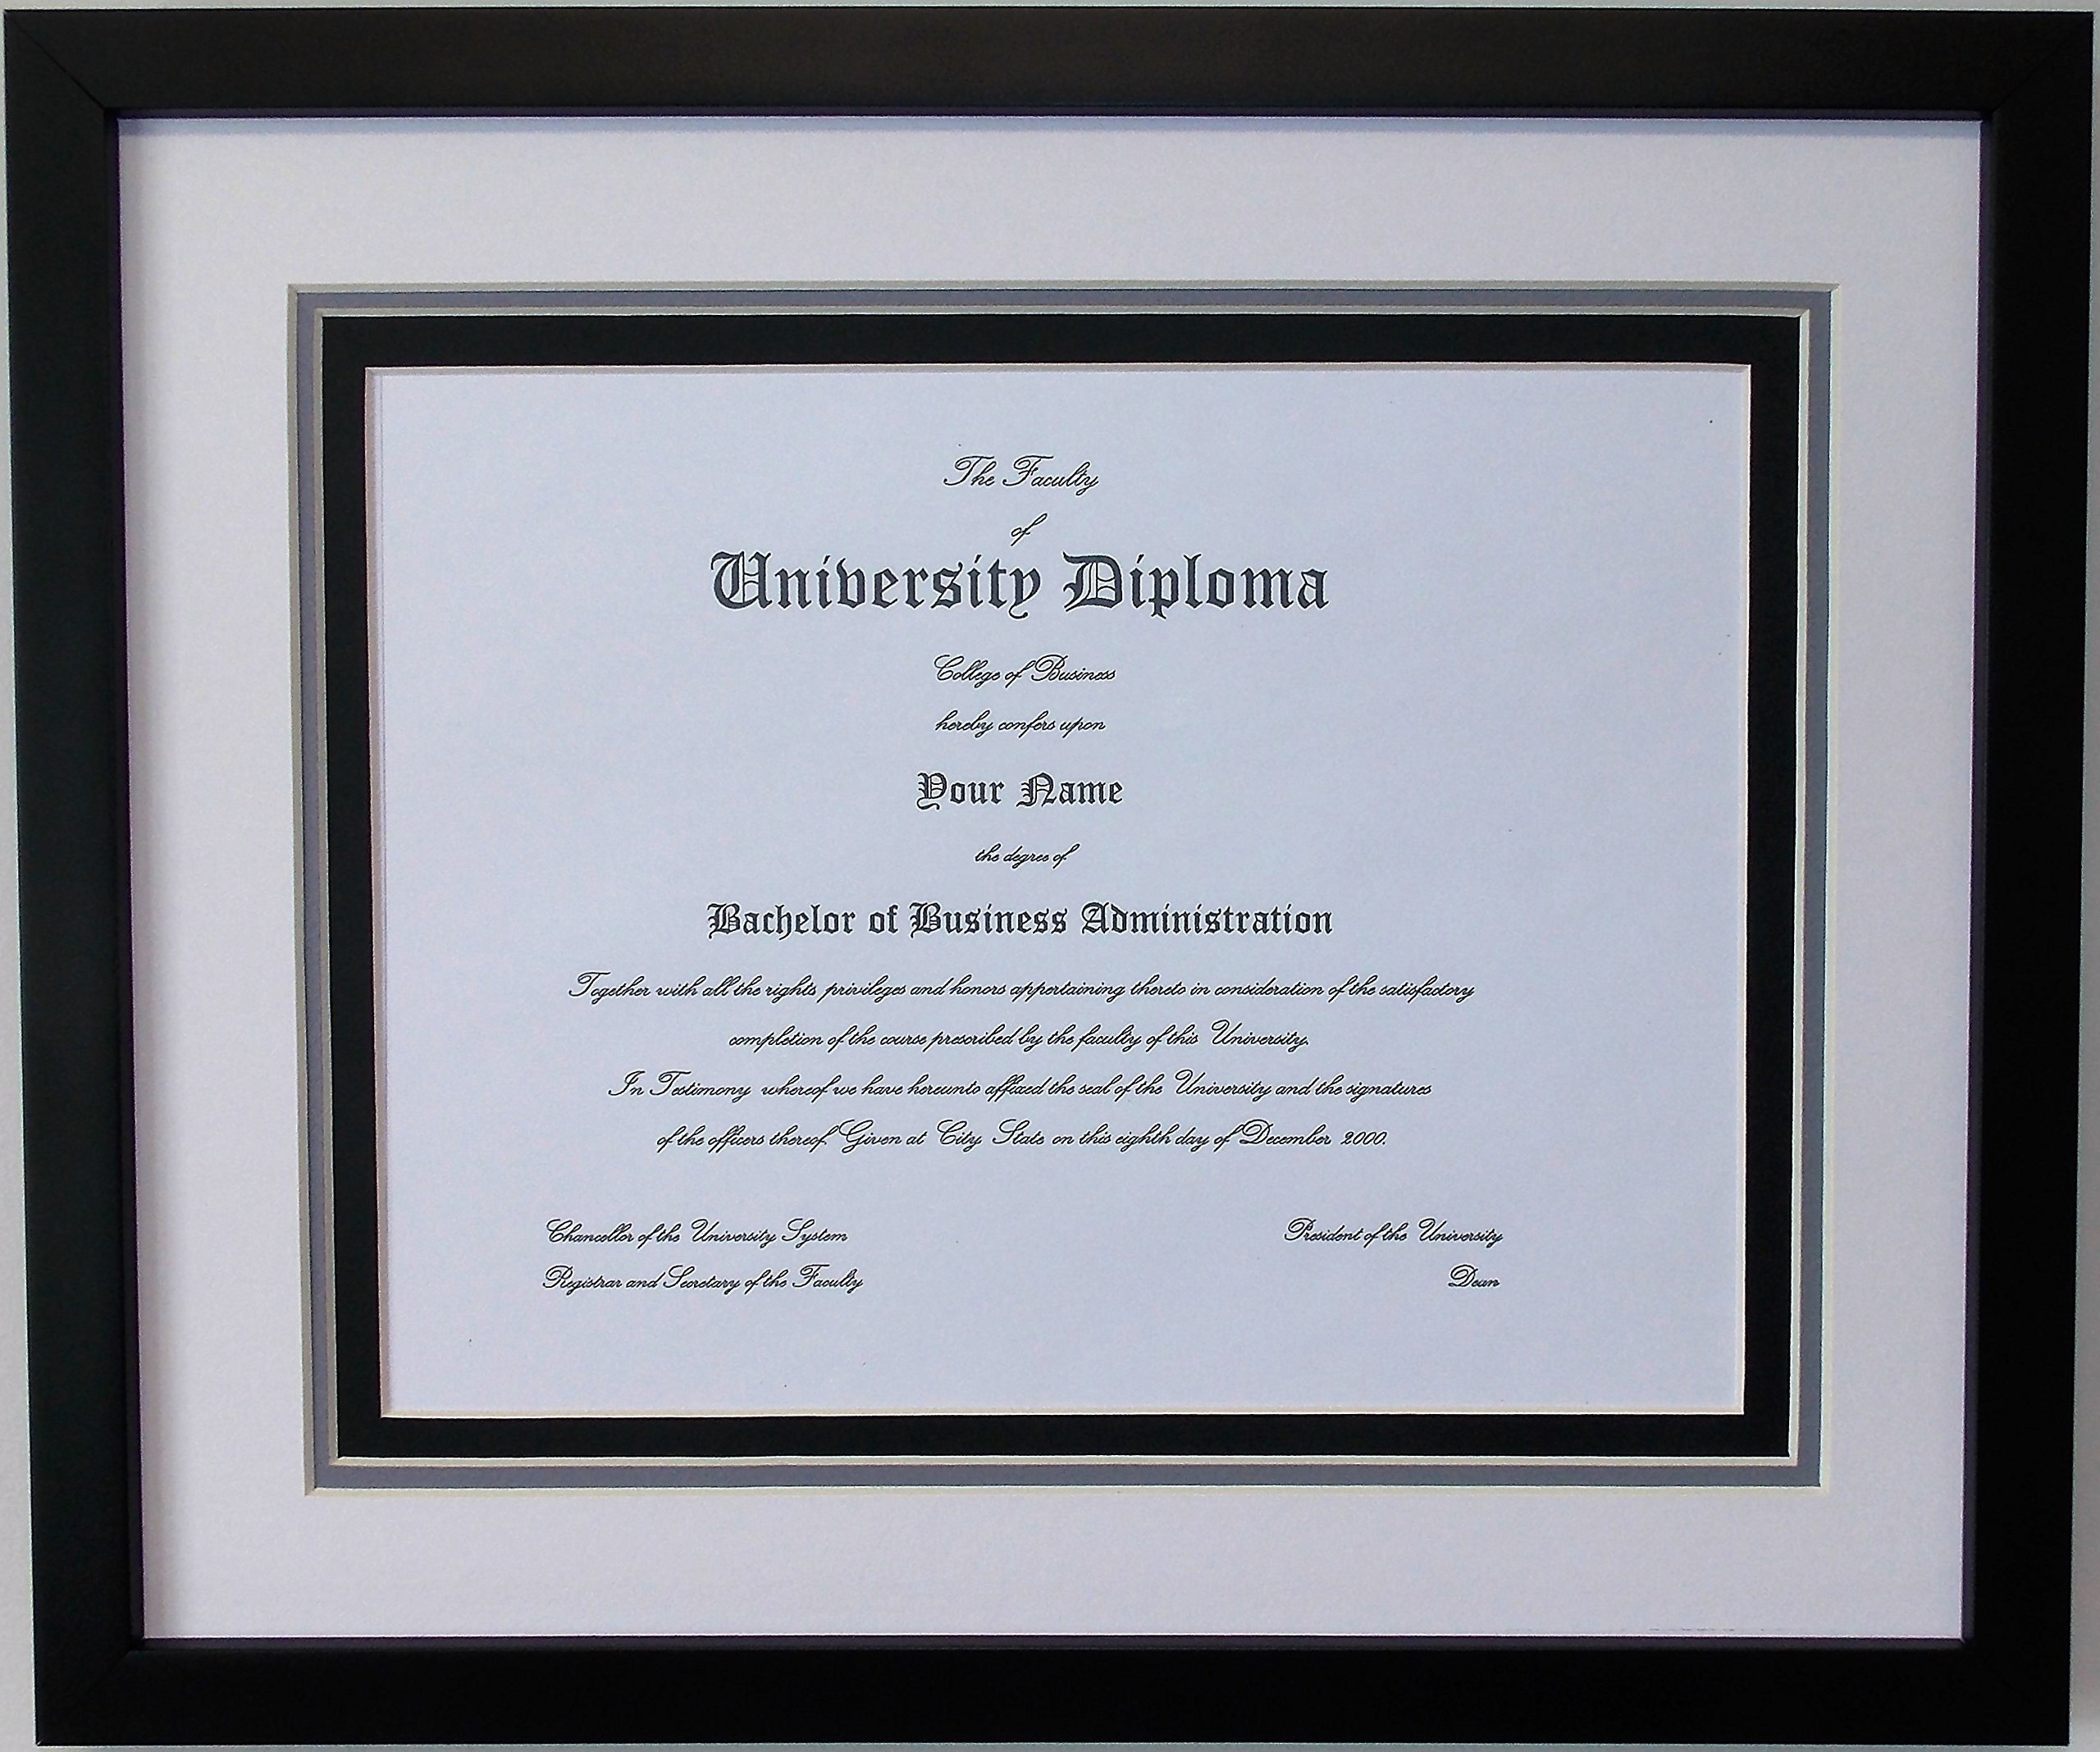 Graduation University Diploma Certificate Picture Frame Holds8.5x11 Certificate Triple Matted Black Frame